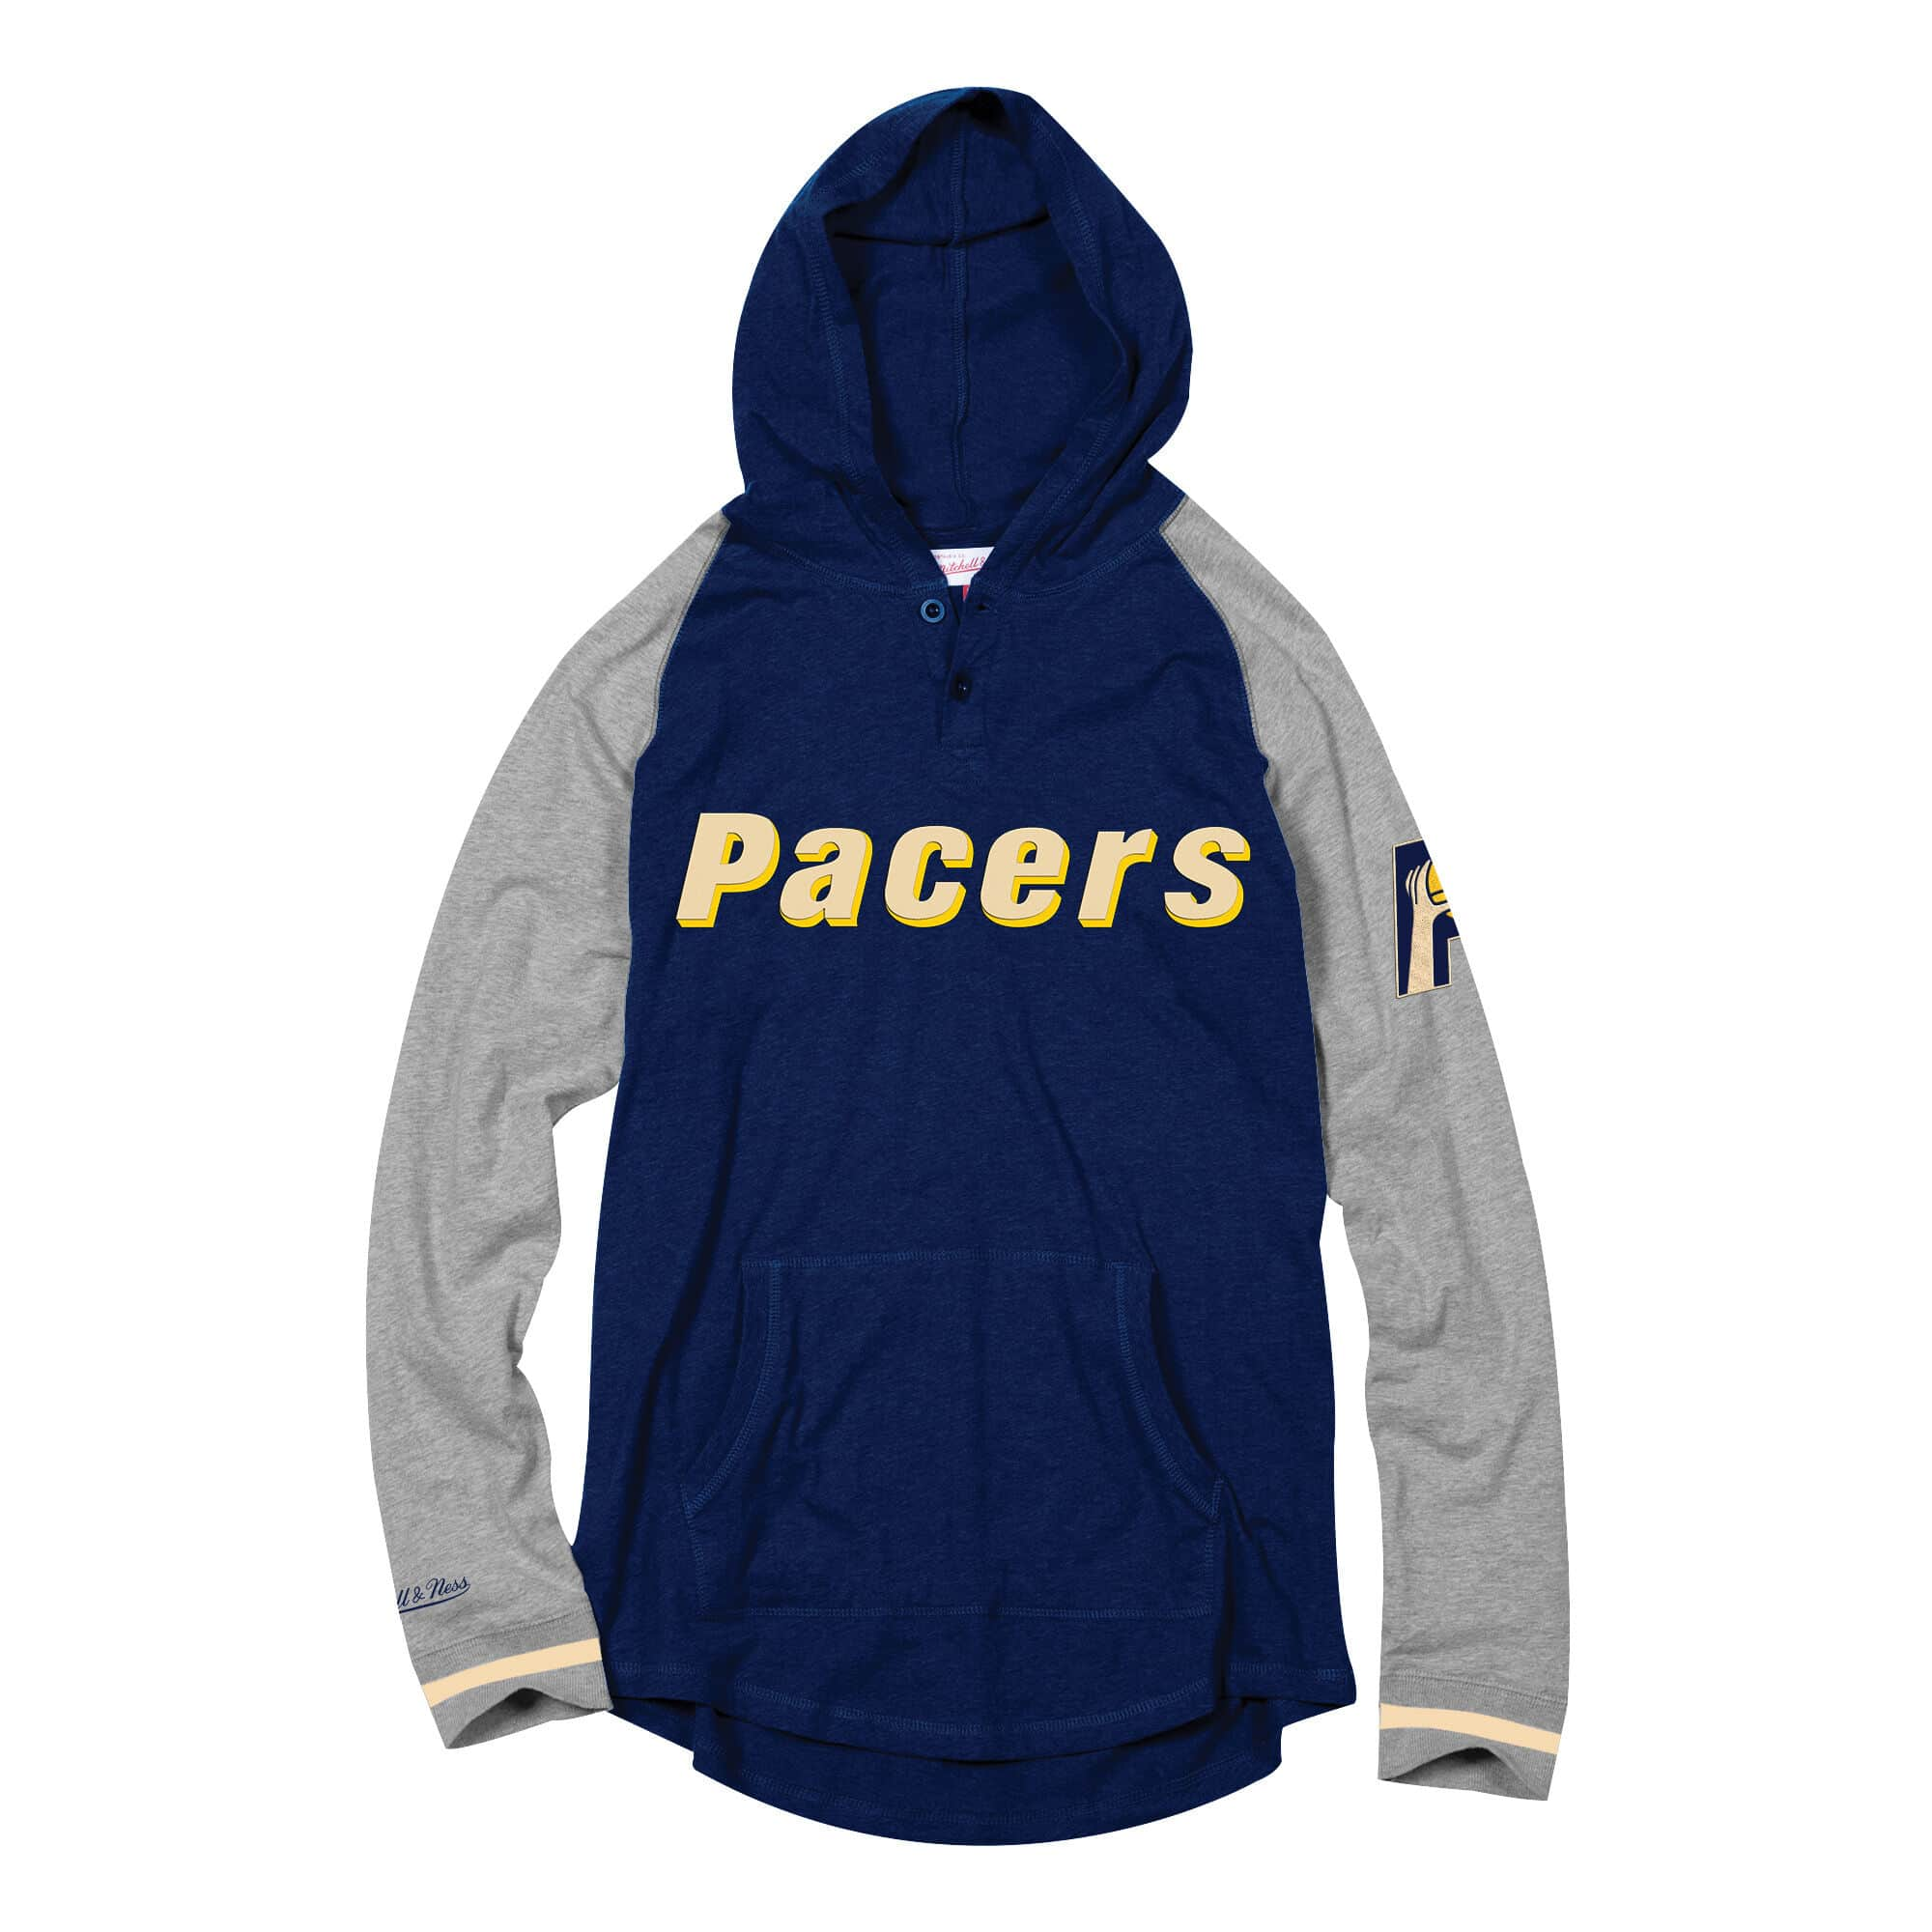 Slugfest Lightweight Hoody Indiana Pacers